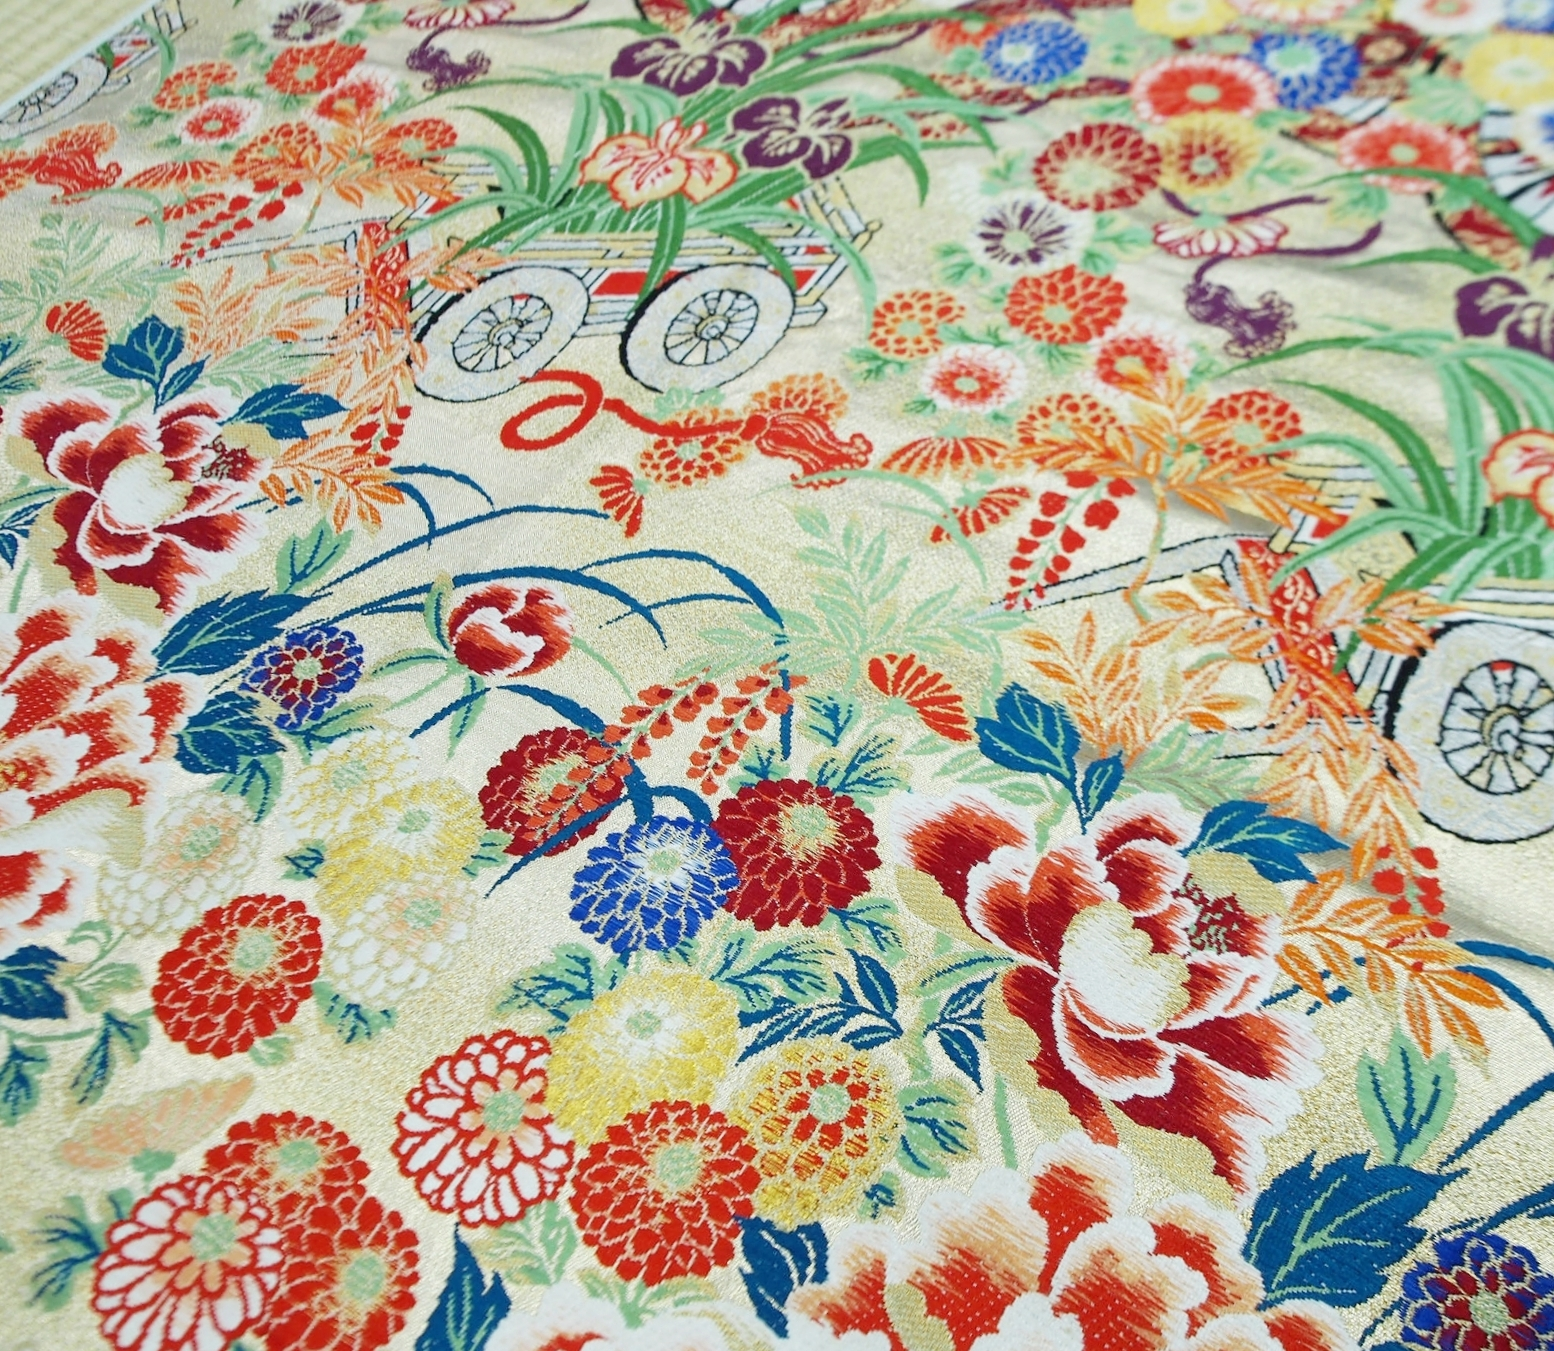 A woven fabric piece containing an intricate blend of colors, portraying miyabi aesthetics.  ©TOKI